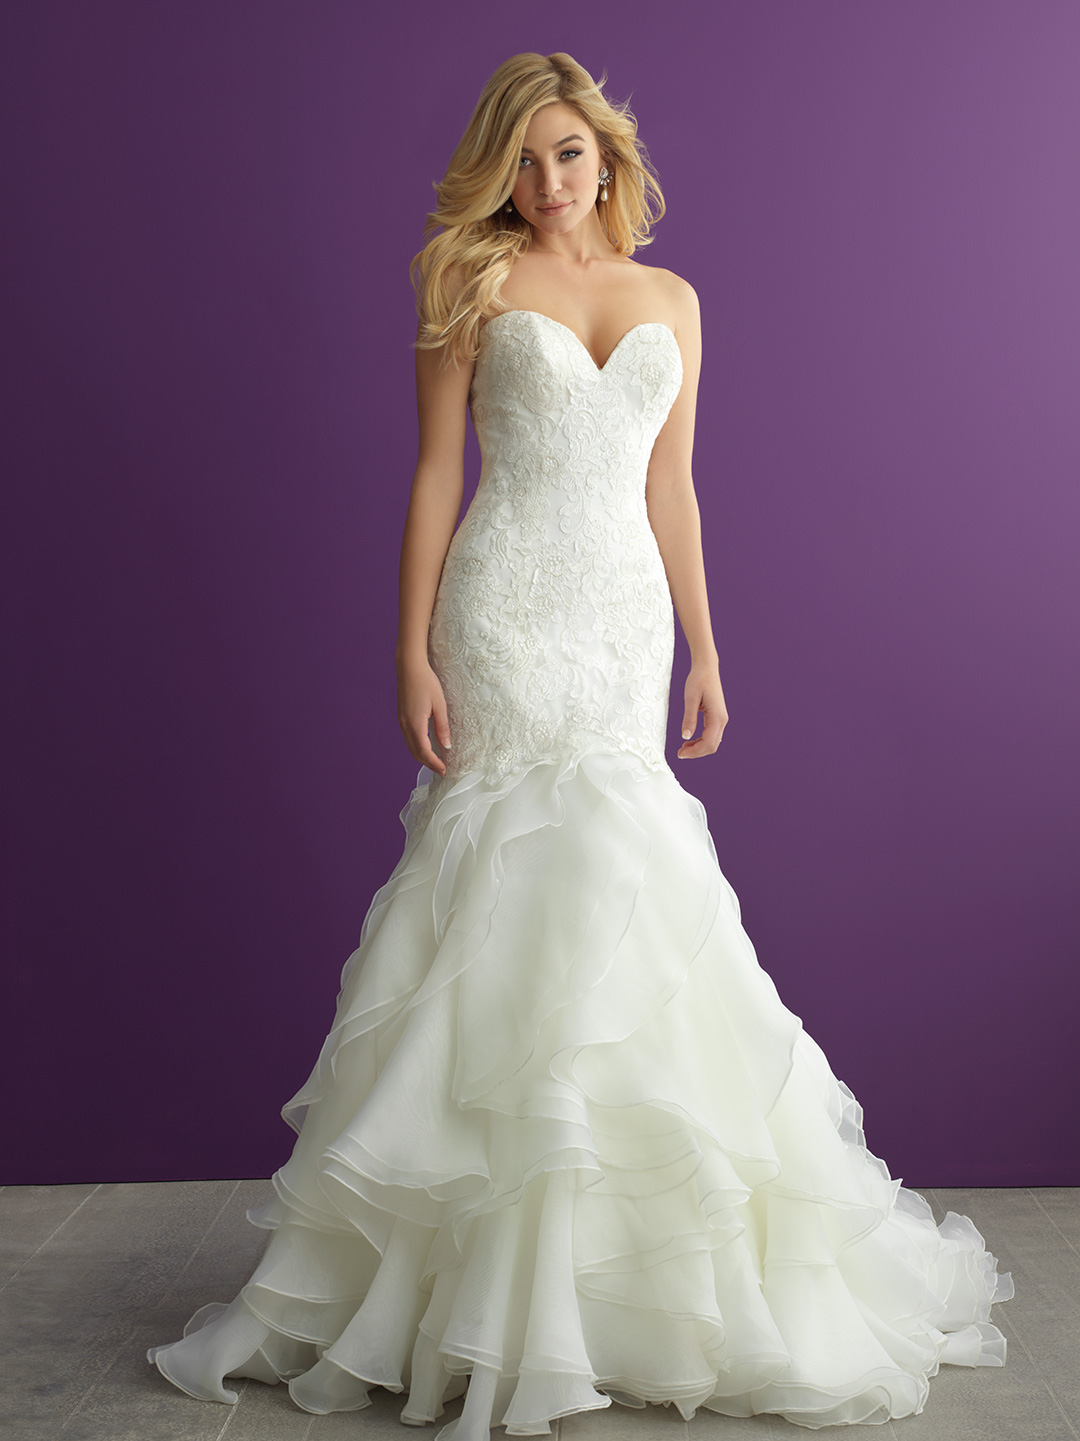 Exelent Allure Bridal Gowns Ensign - Top Wedding Gowns ...